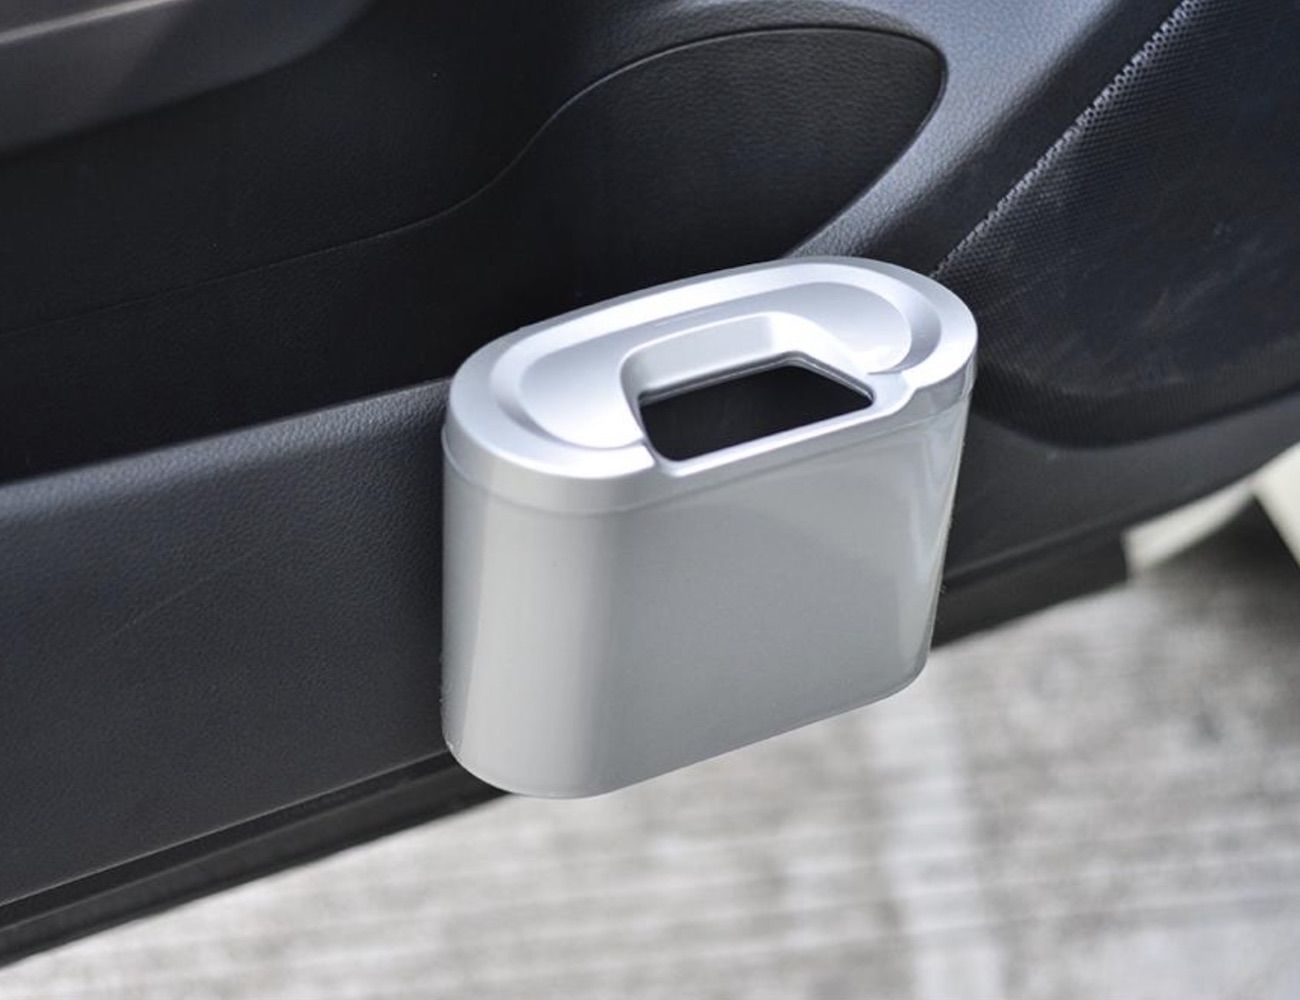 Keep Your Car Neat With This Universal Car Garbage Bin